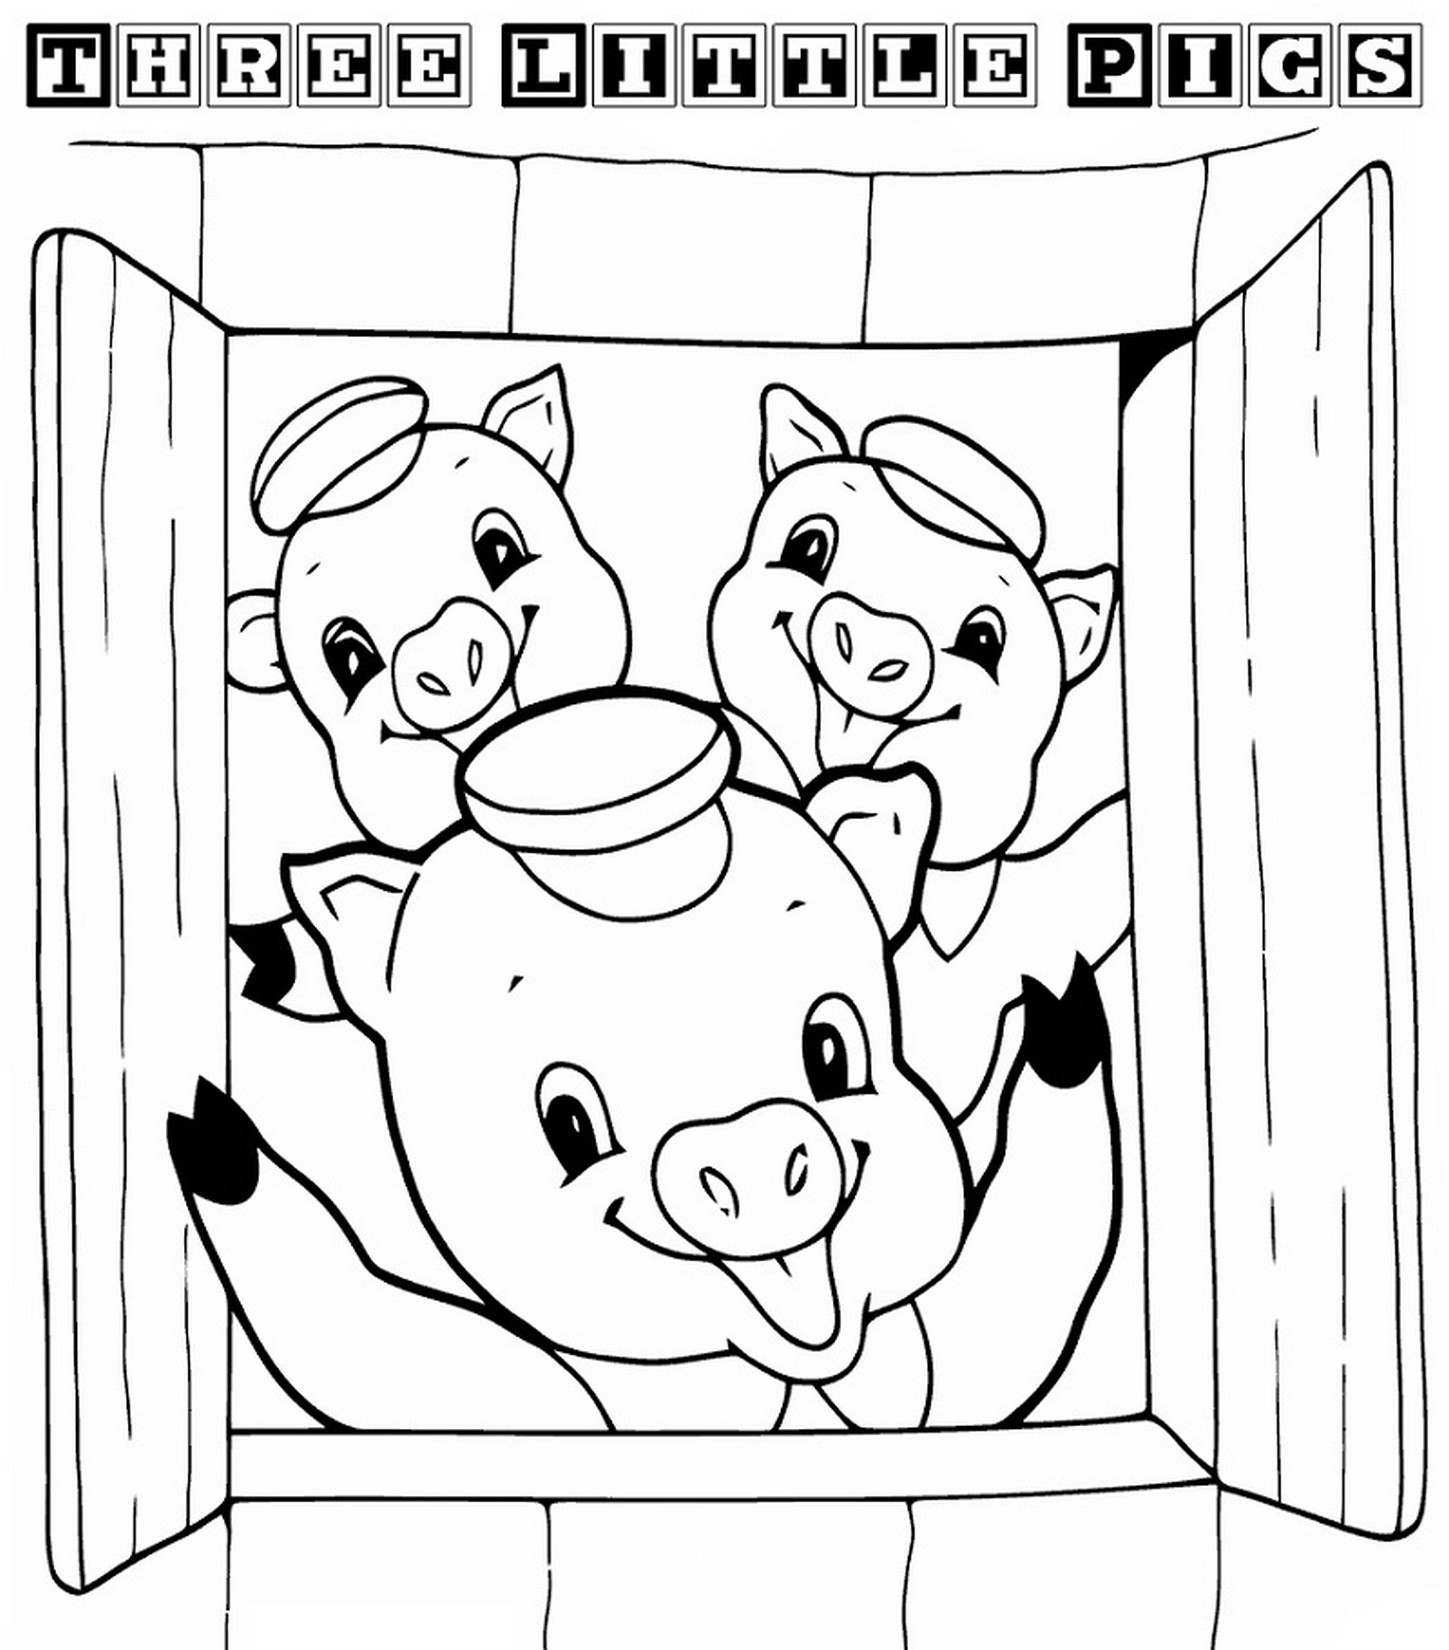 Best ideas about Preschool Coloring Sheets For The 3 Little Pigs . Save or Pin Three Little Pigs Pages For Preschoolers Coloring Pages Now.